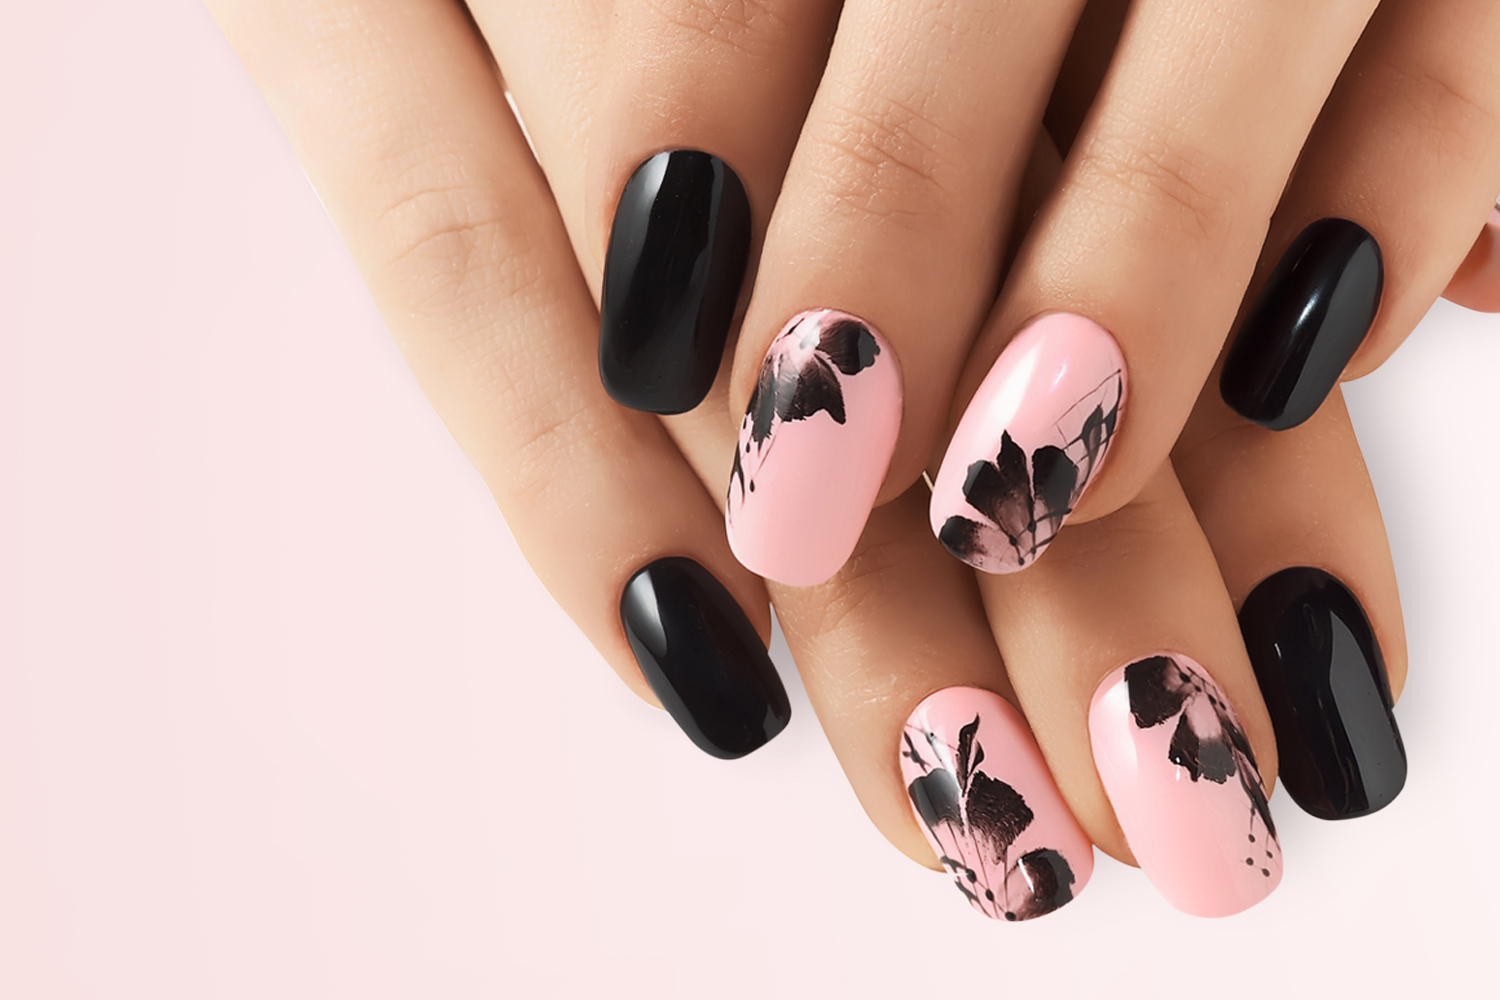 Nail salon wallpapers high quality download free - Nails wallpaper download ...